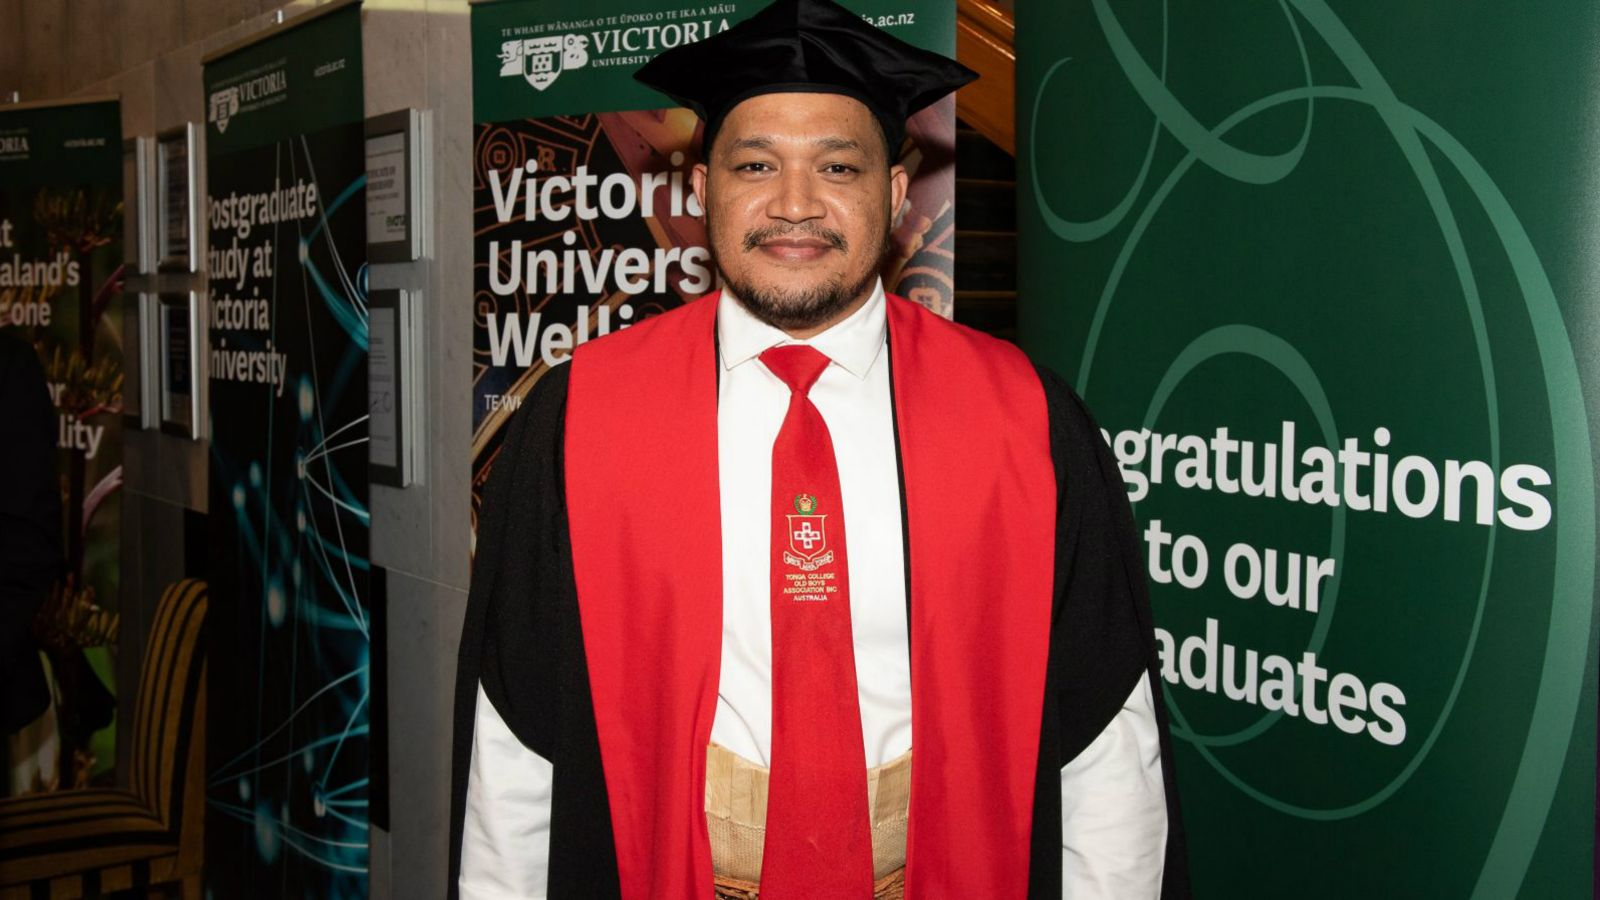 PhD graduate Taitusi Taufa, in graduation attire, stands in front of Victoria University of Wellington graduation banners